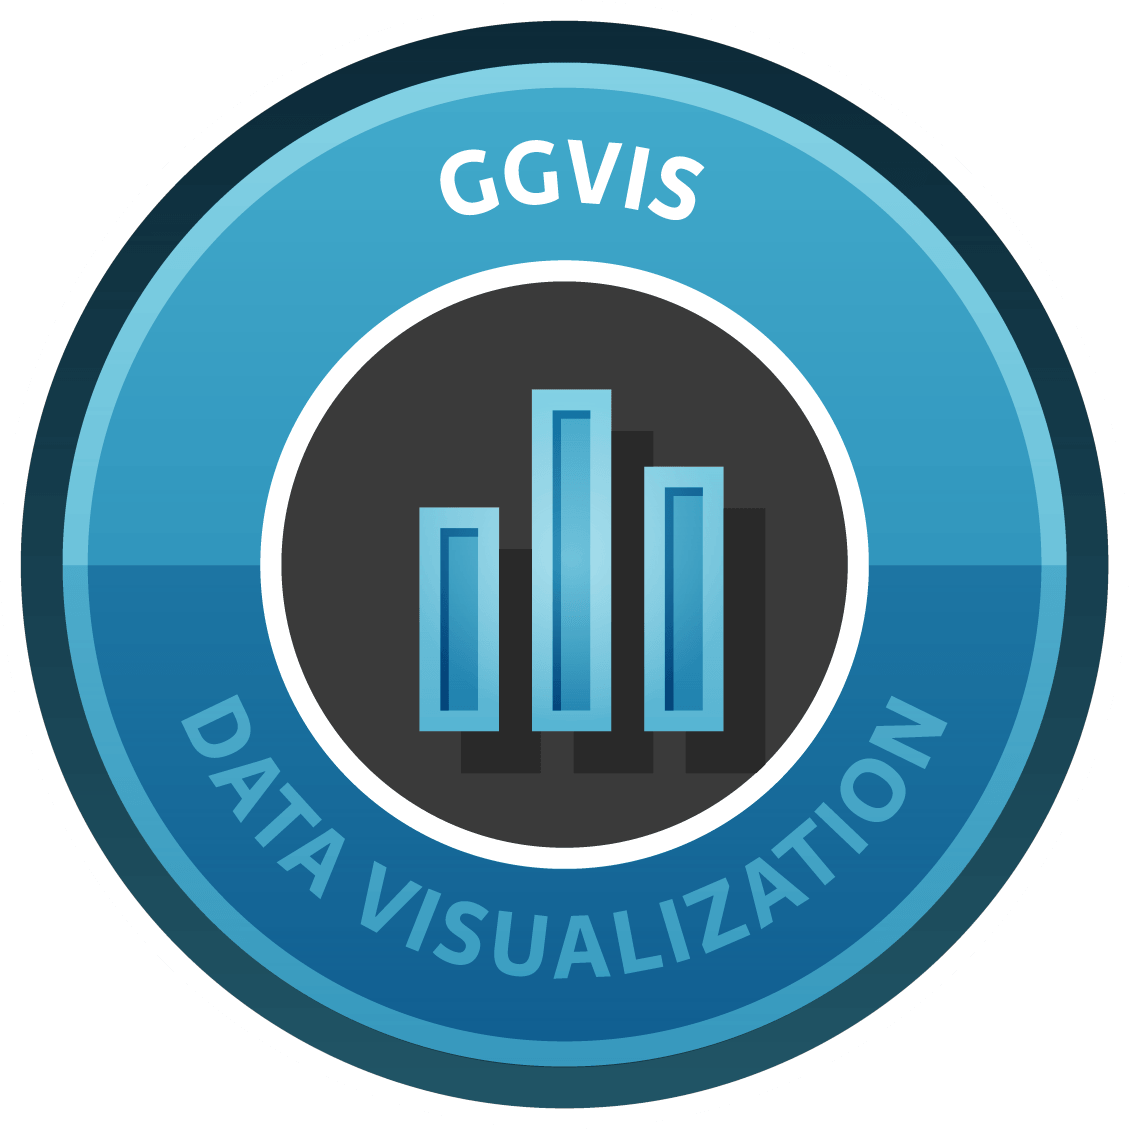 Data Visualization in R with ggvis